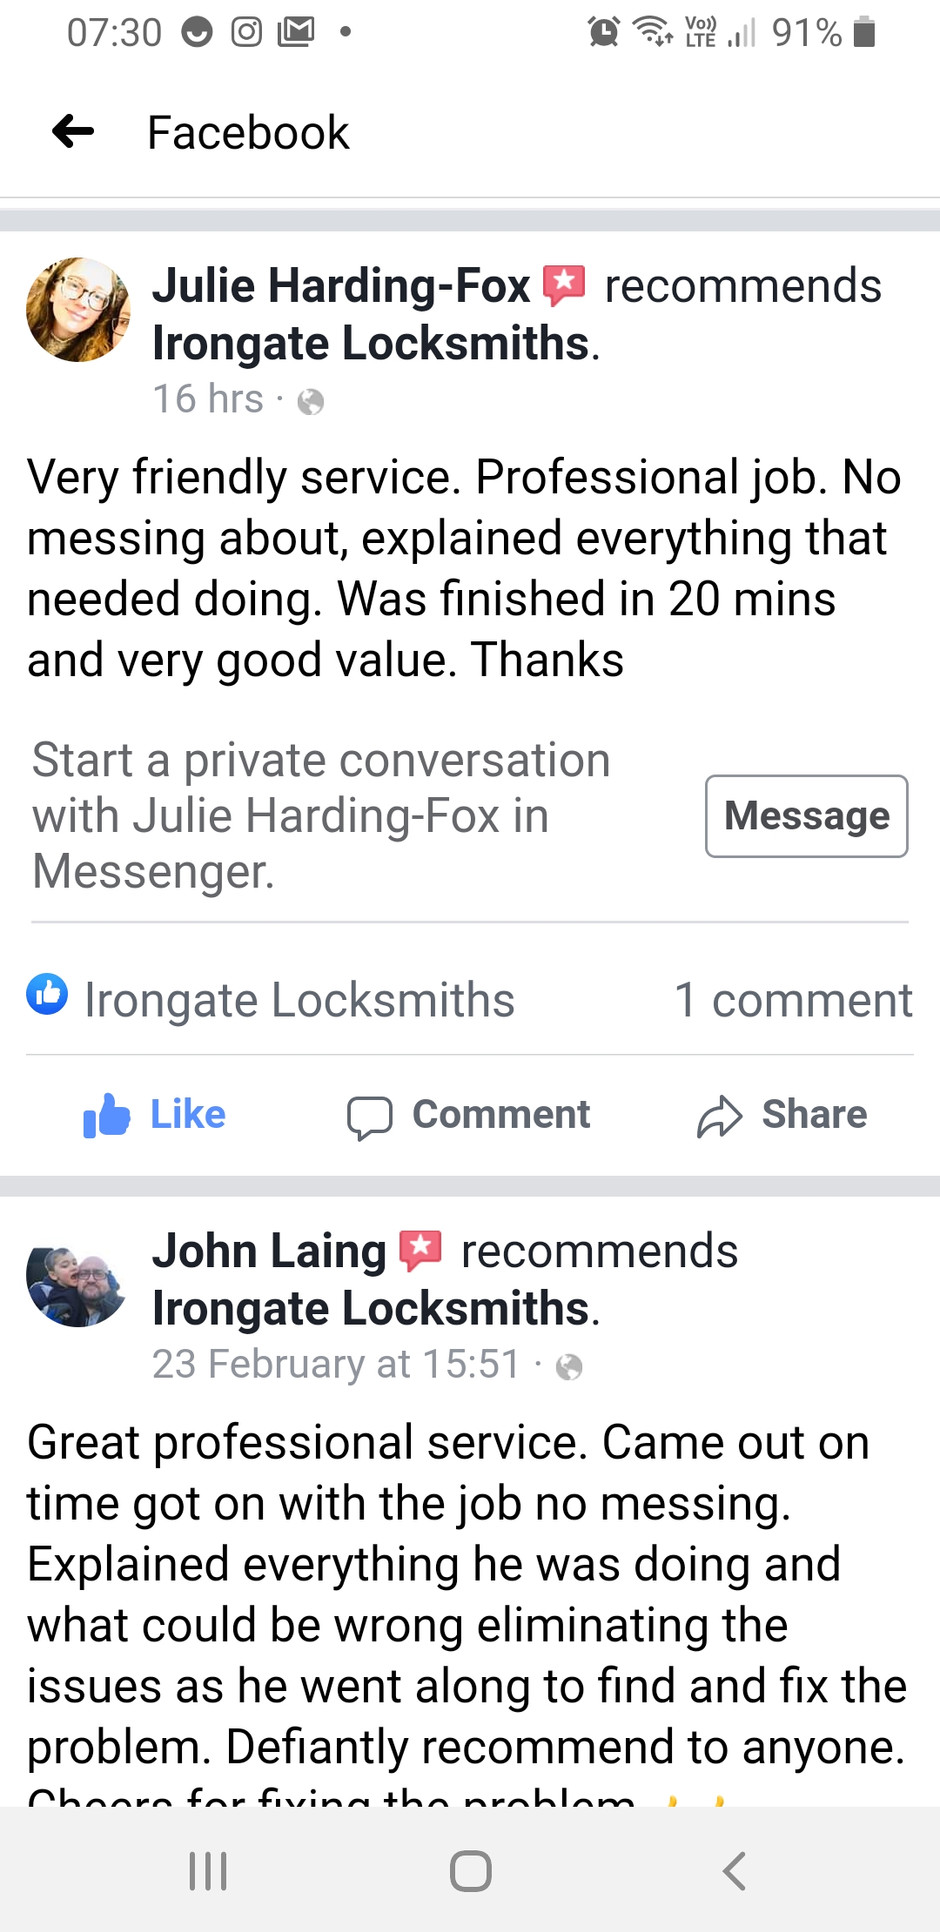 Another great review!